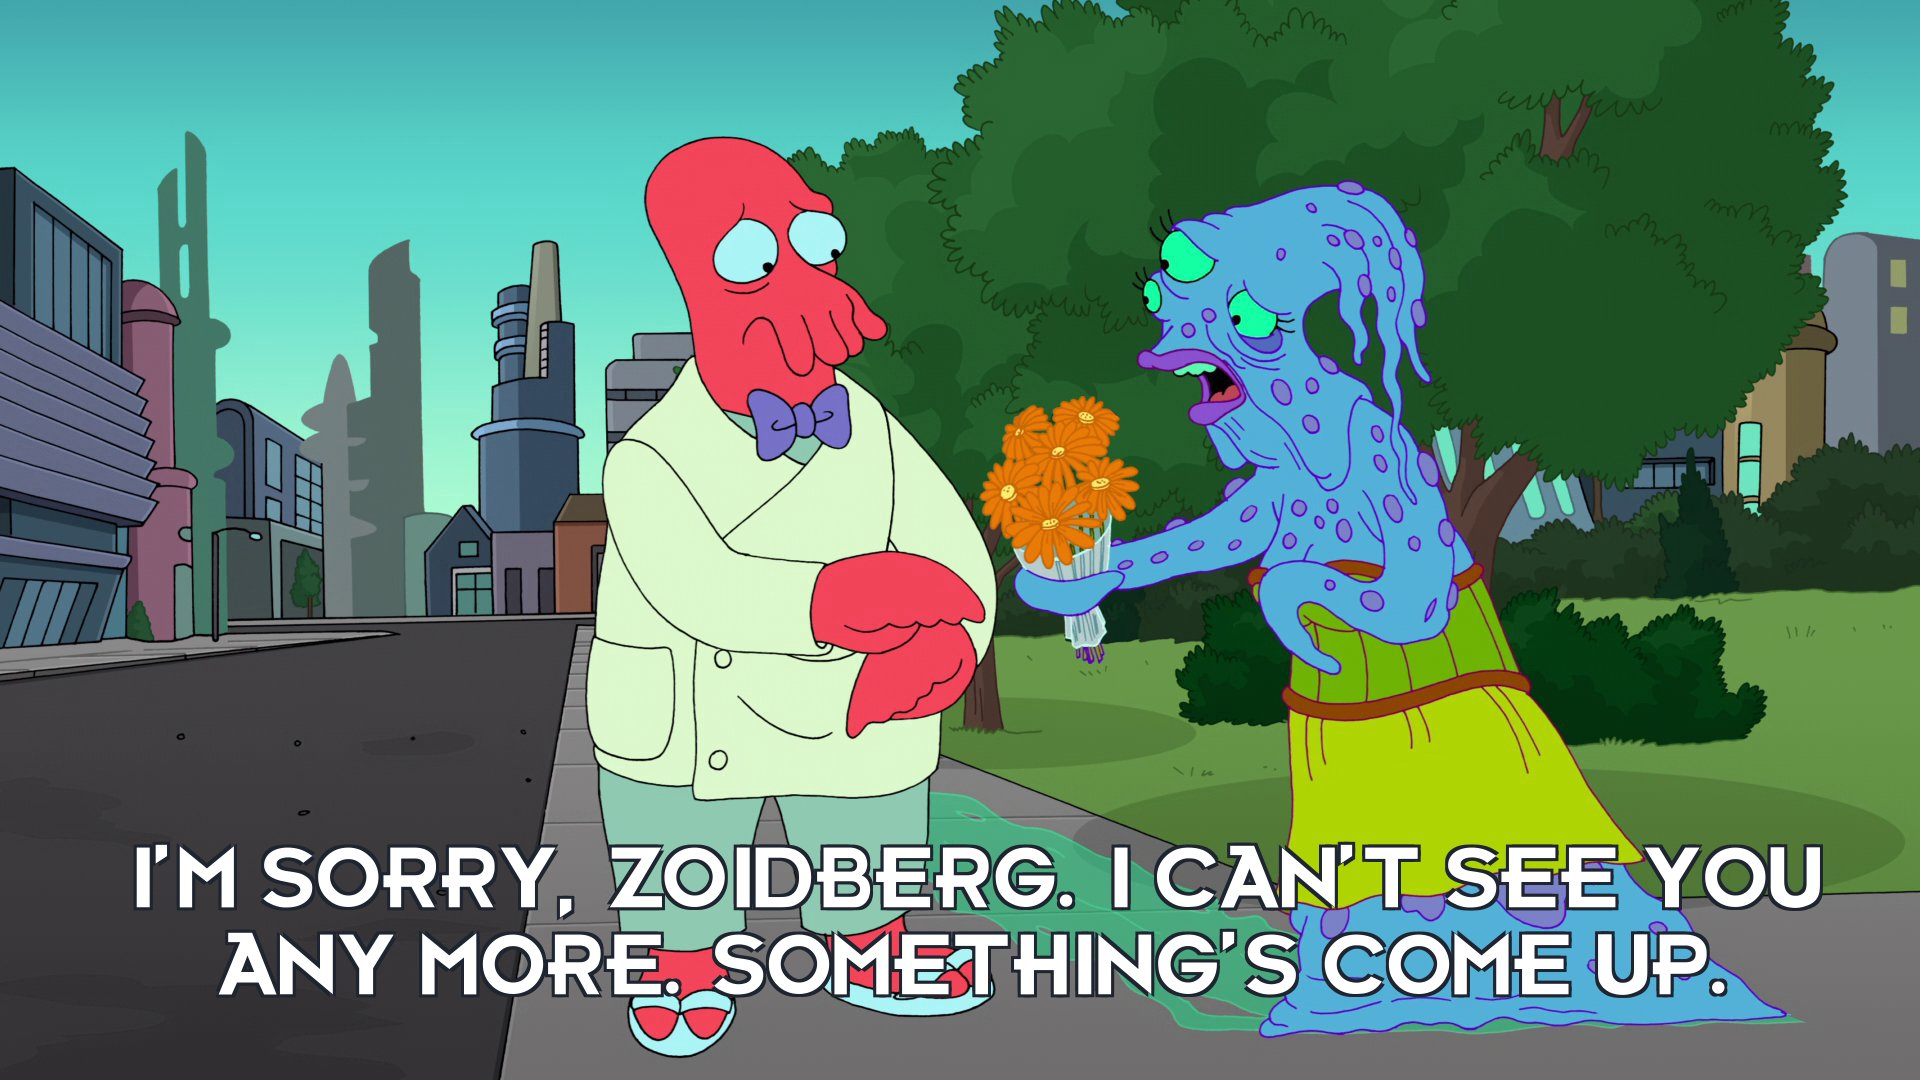 Zindy: I'm sorry, Zoidberg. I can't see you any more. Something's come up.